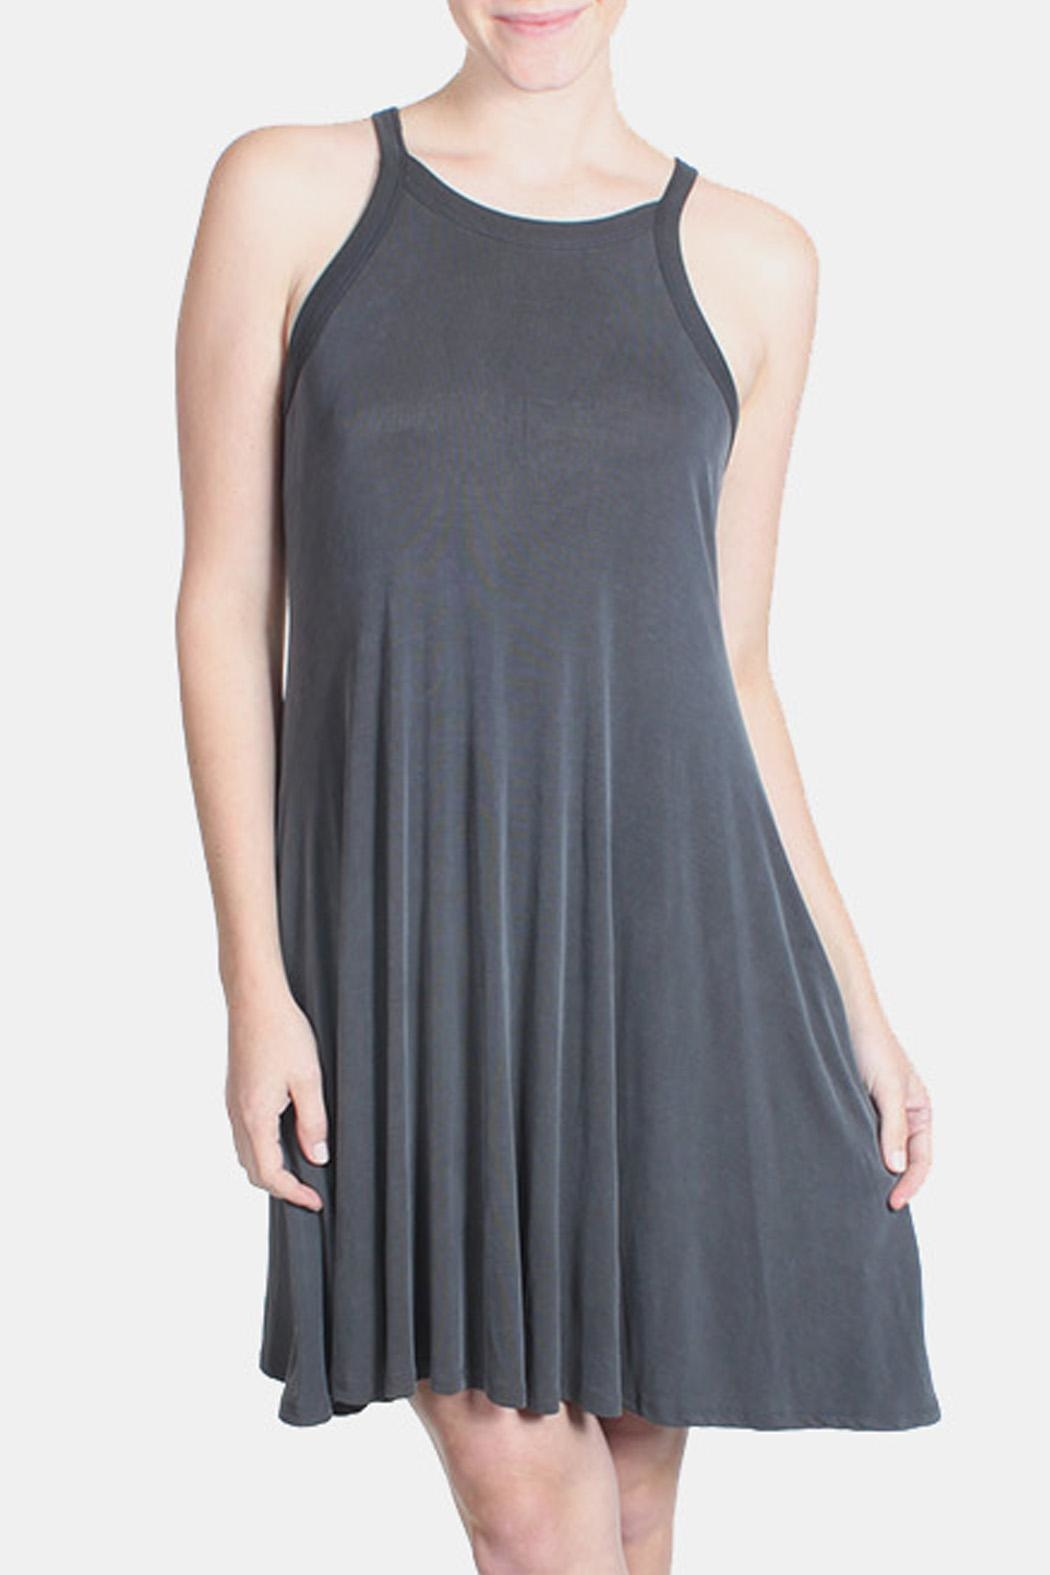 Chris & Carol Charcoal Ribbed Dress - Front Full Image